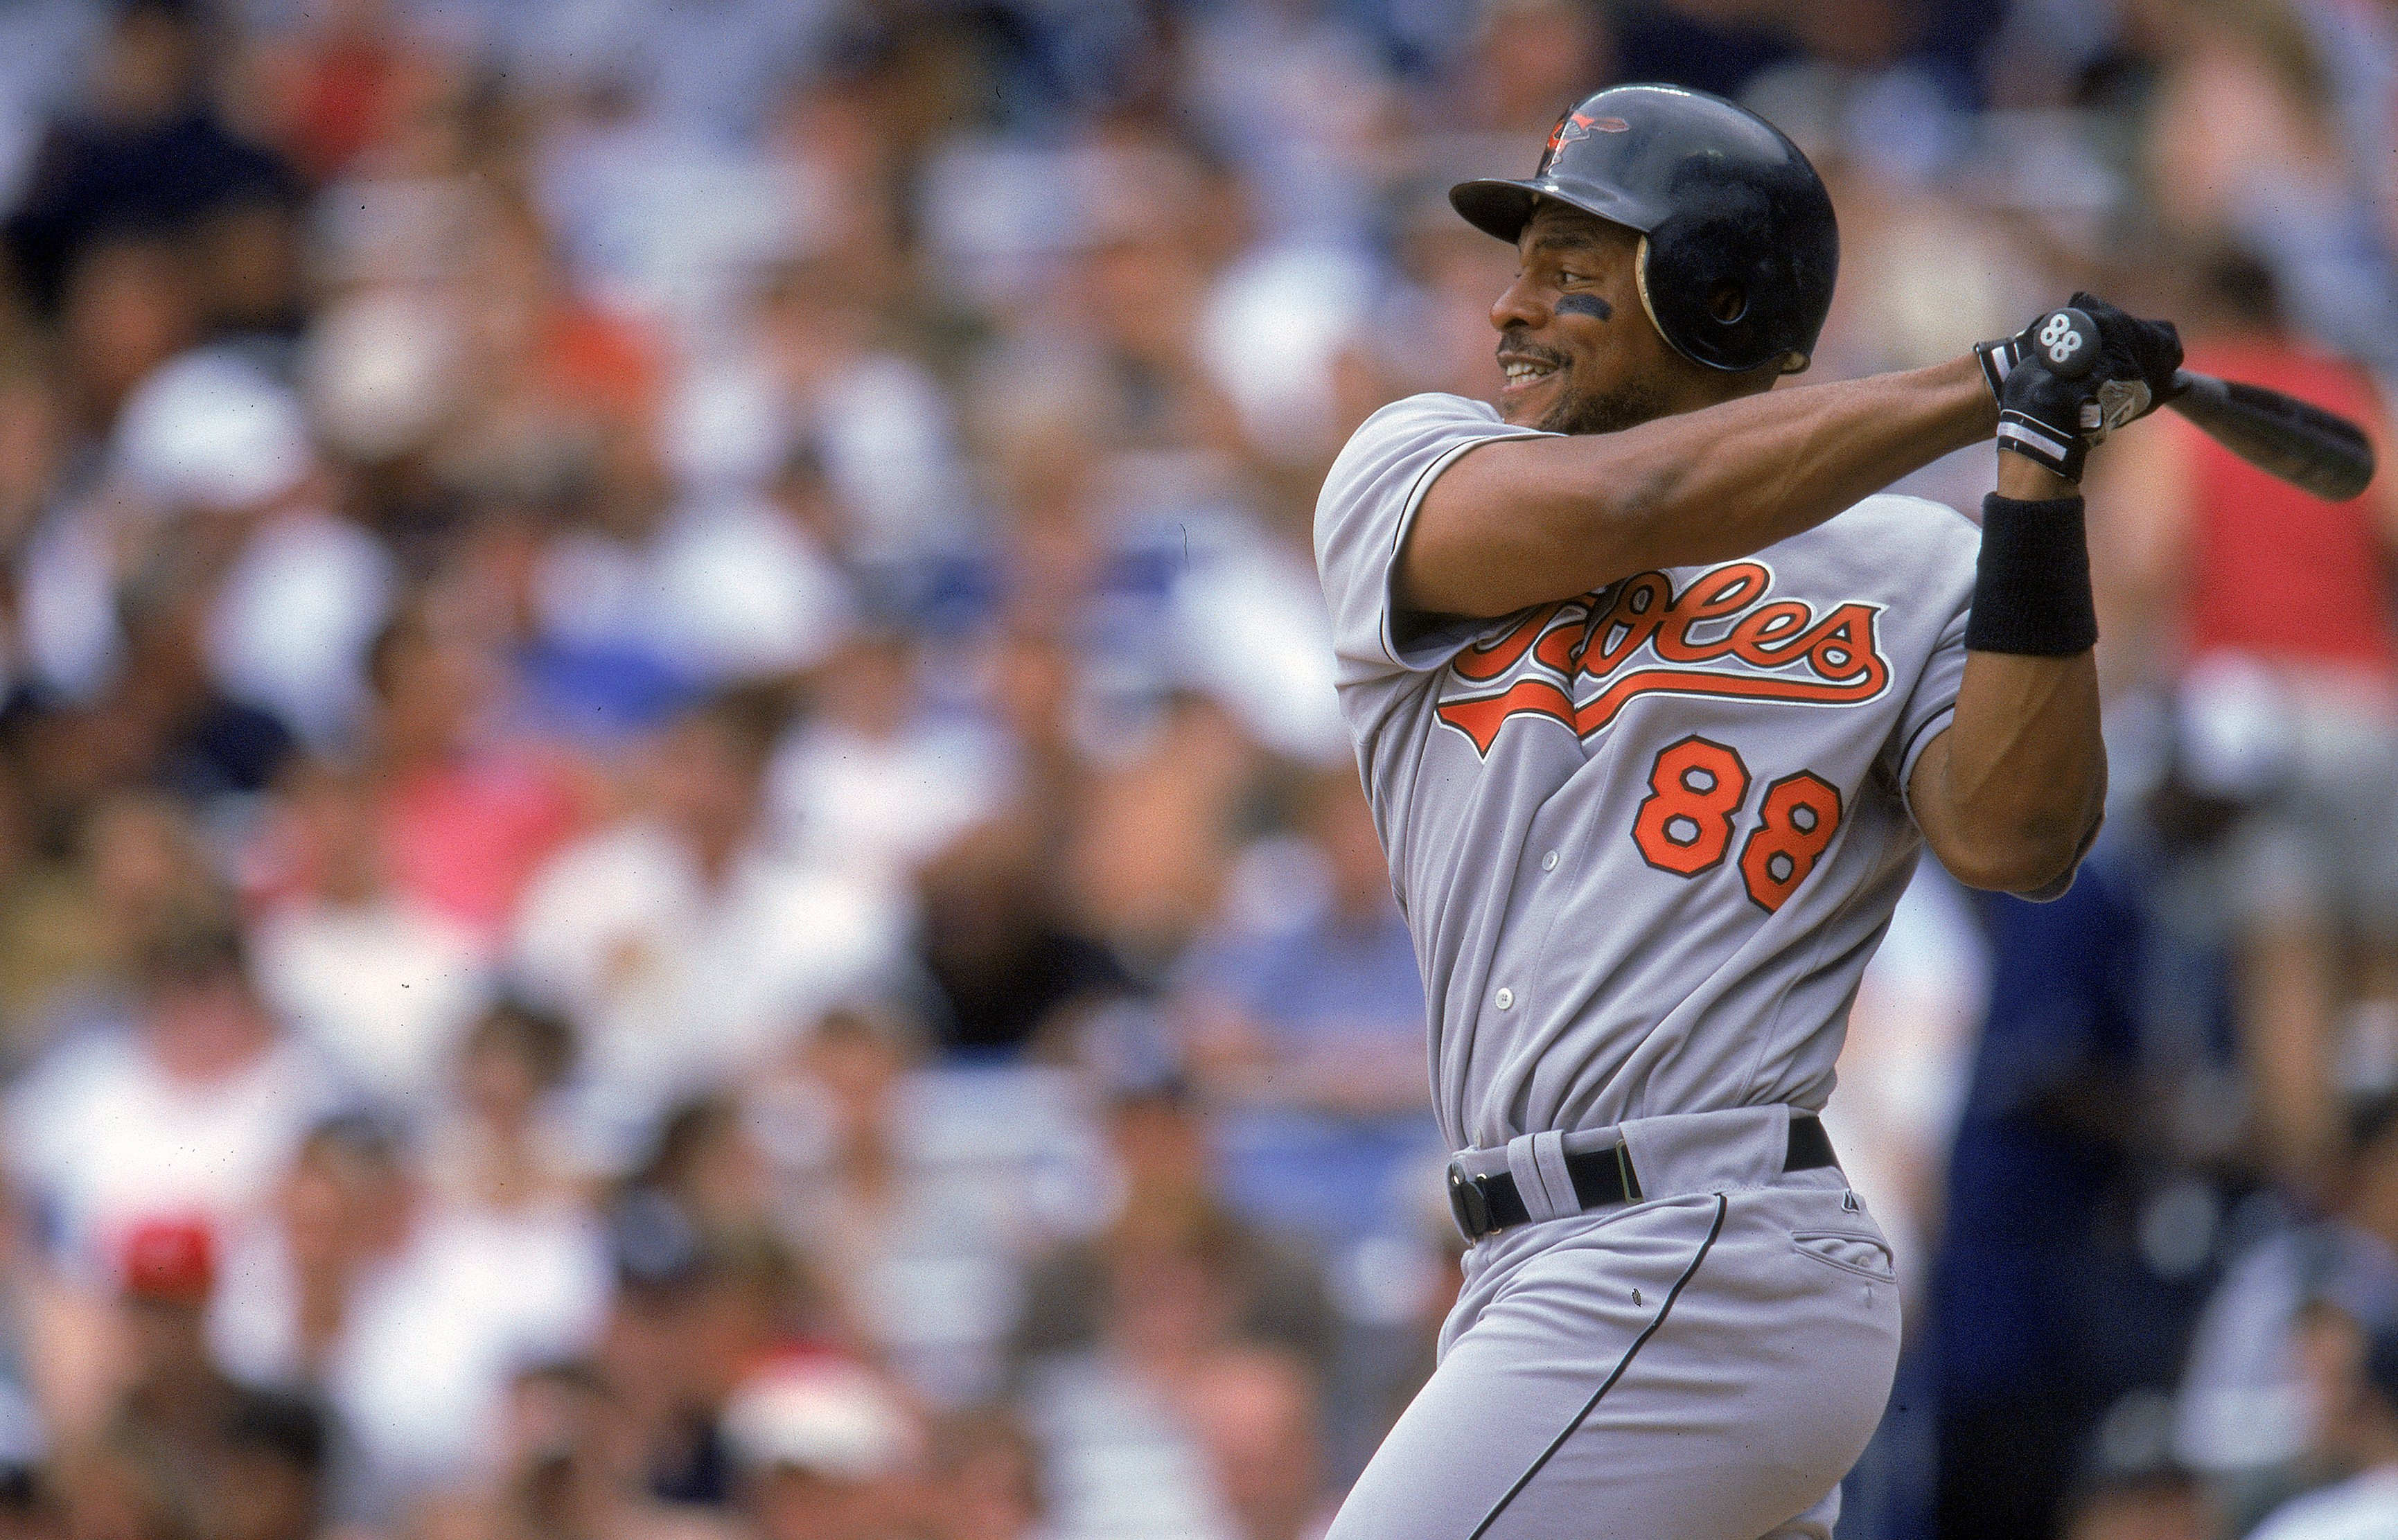 4 Jul 2000: Albert Belle #88 of the Baltimore Orioles swings at the pitch during the game against the New York Yankees at Yankee Stadium in New York, New York.  The Orioles defeated the Yankees 7-6.Mandatory Credit: Jamie Squire  /Allsport